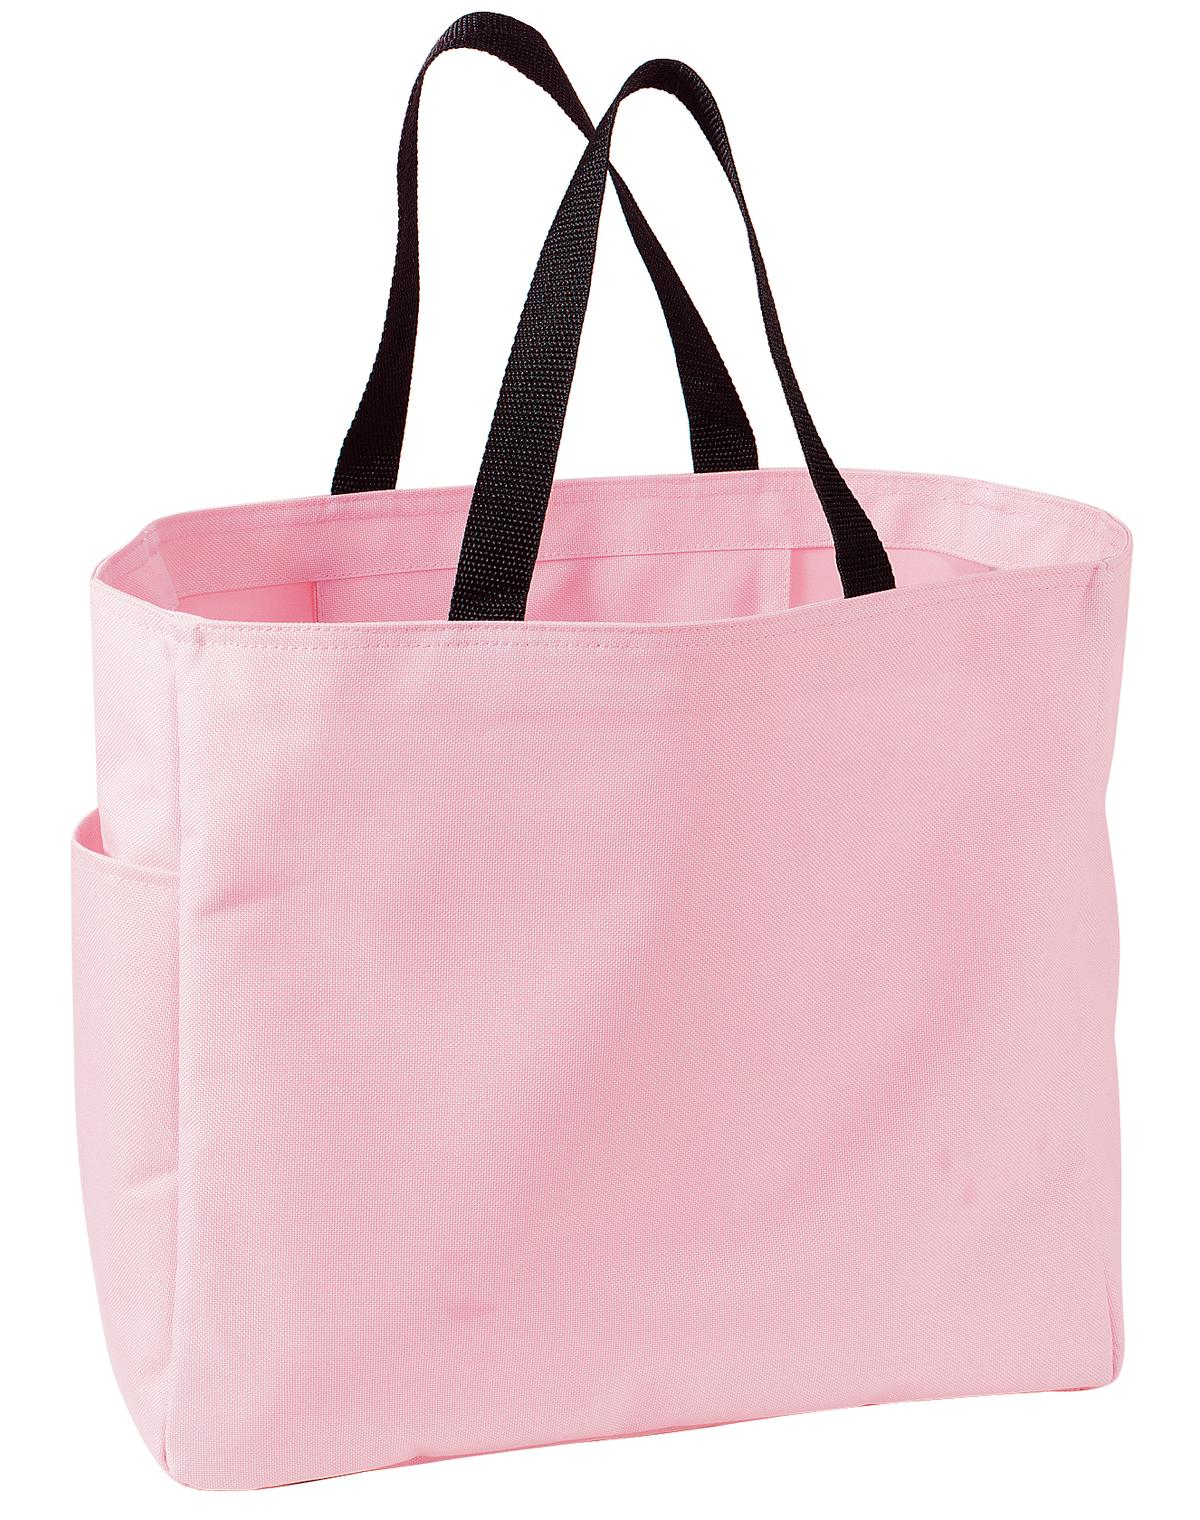 Port Authority ®  -  Essential Tote.  B0750 - Pink